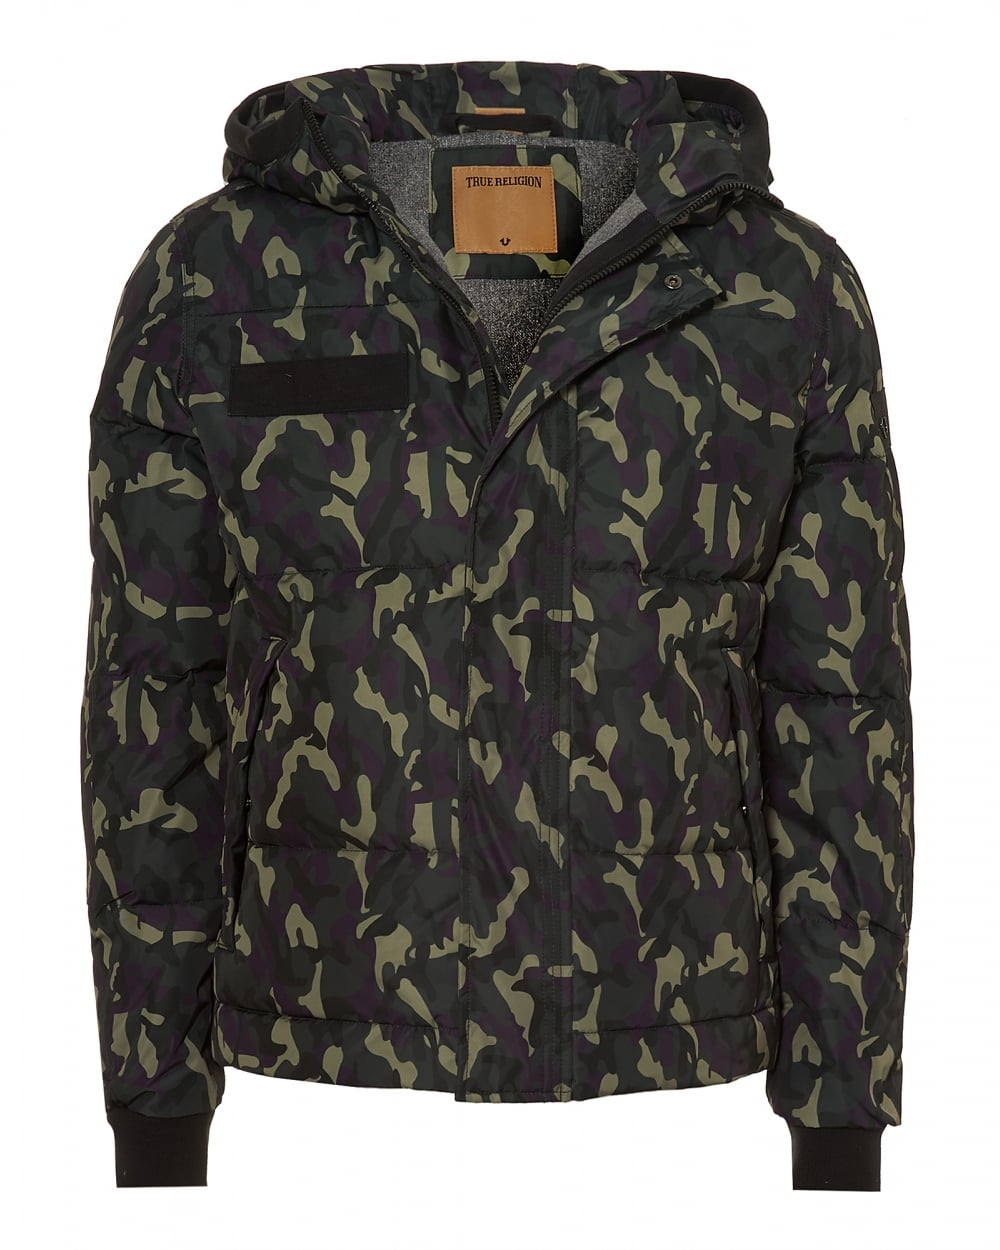 true religion mens hooded jacket down filled camouflage coat. Black Bedroom Furniture Sets. Home Design Ideas